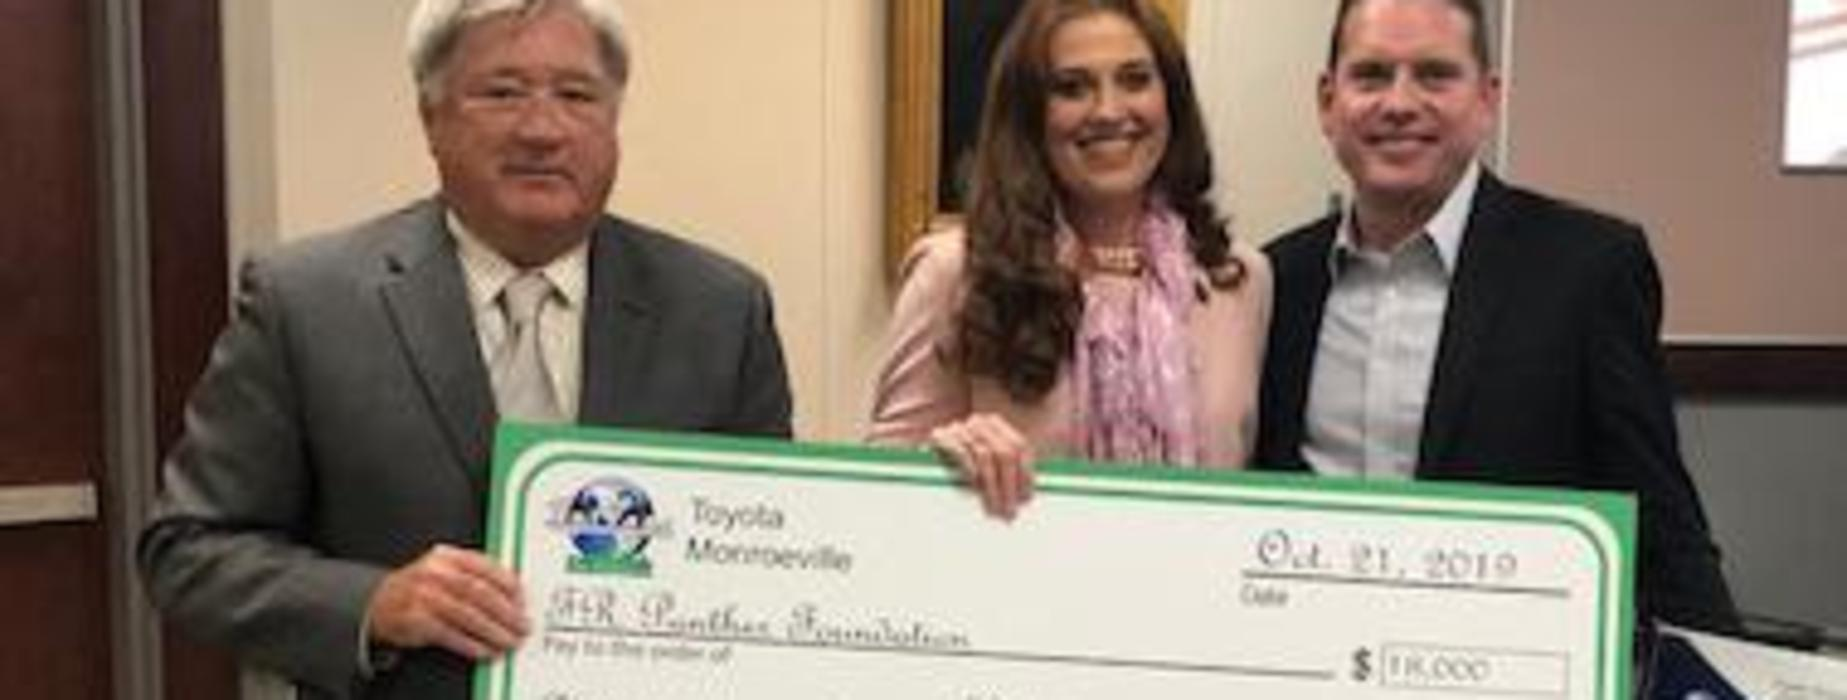 Spitzer Toyota in Monroeville Sponsors $18,000 Innovation Grant for the FR Panther Foundation.